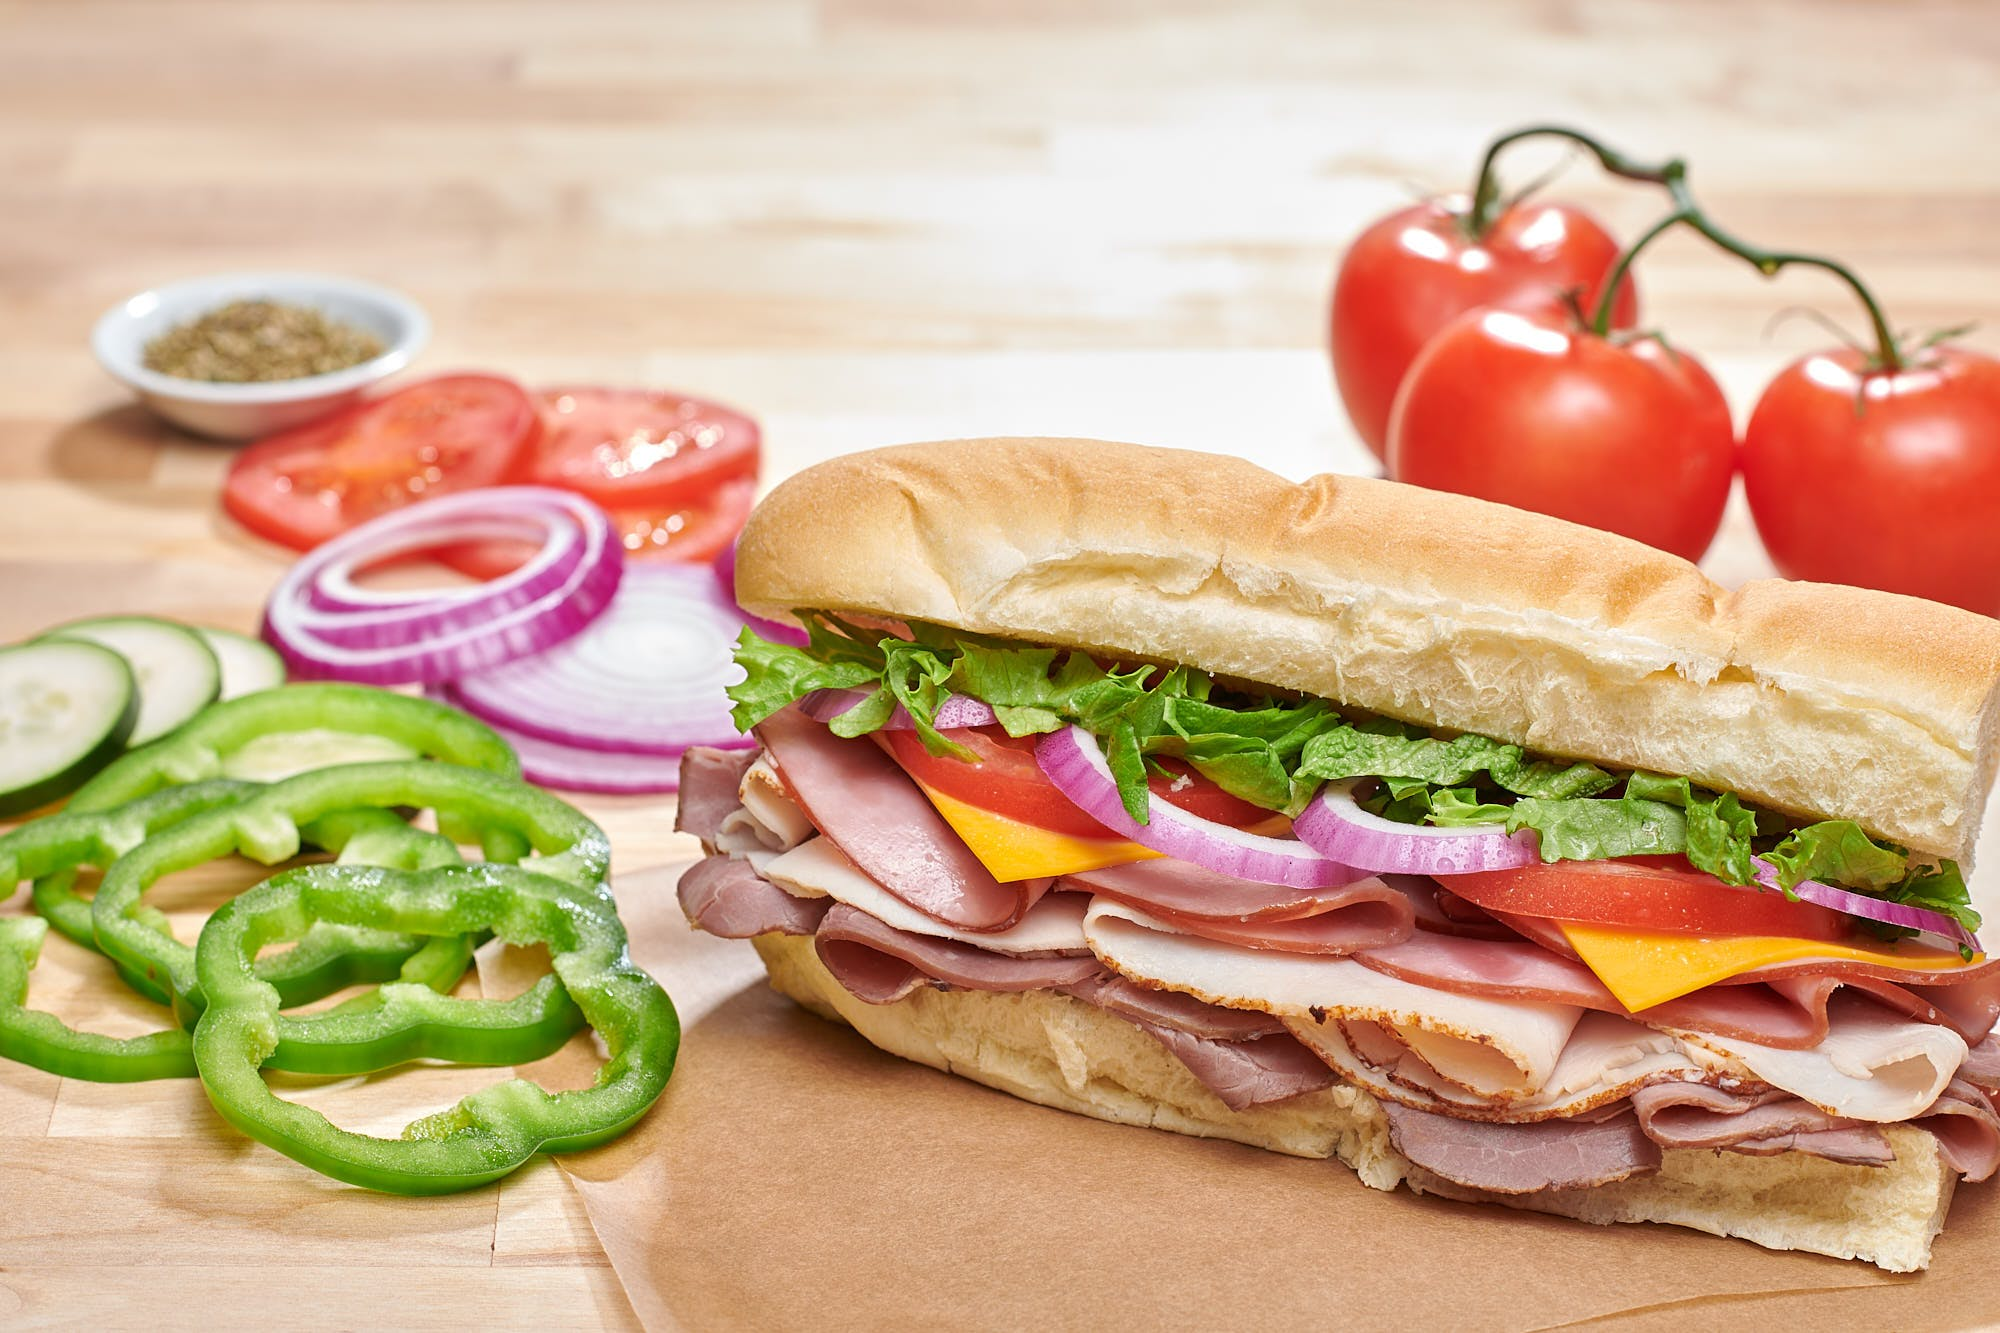 Goodcents Deli Fresh Subs - Anderson Ave. in Manhattan - Highlight